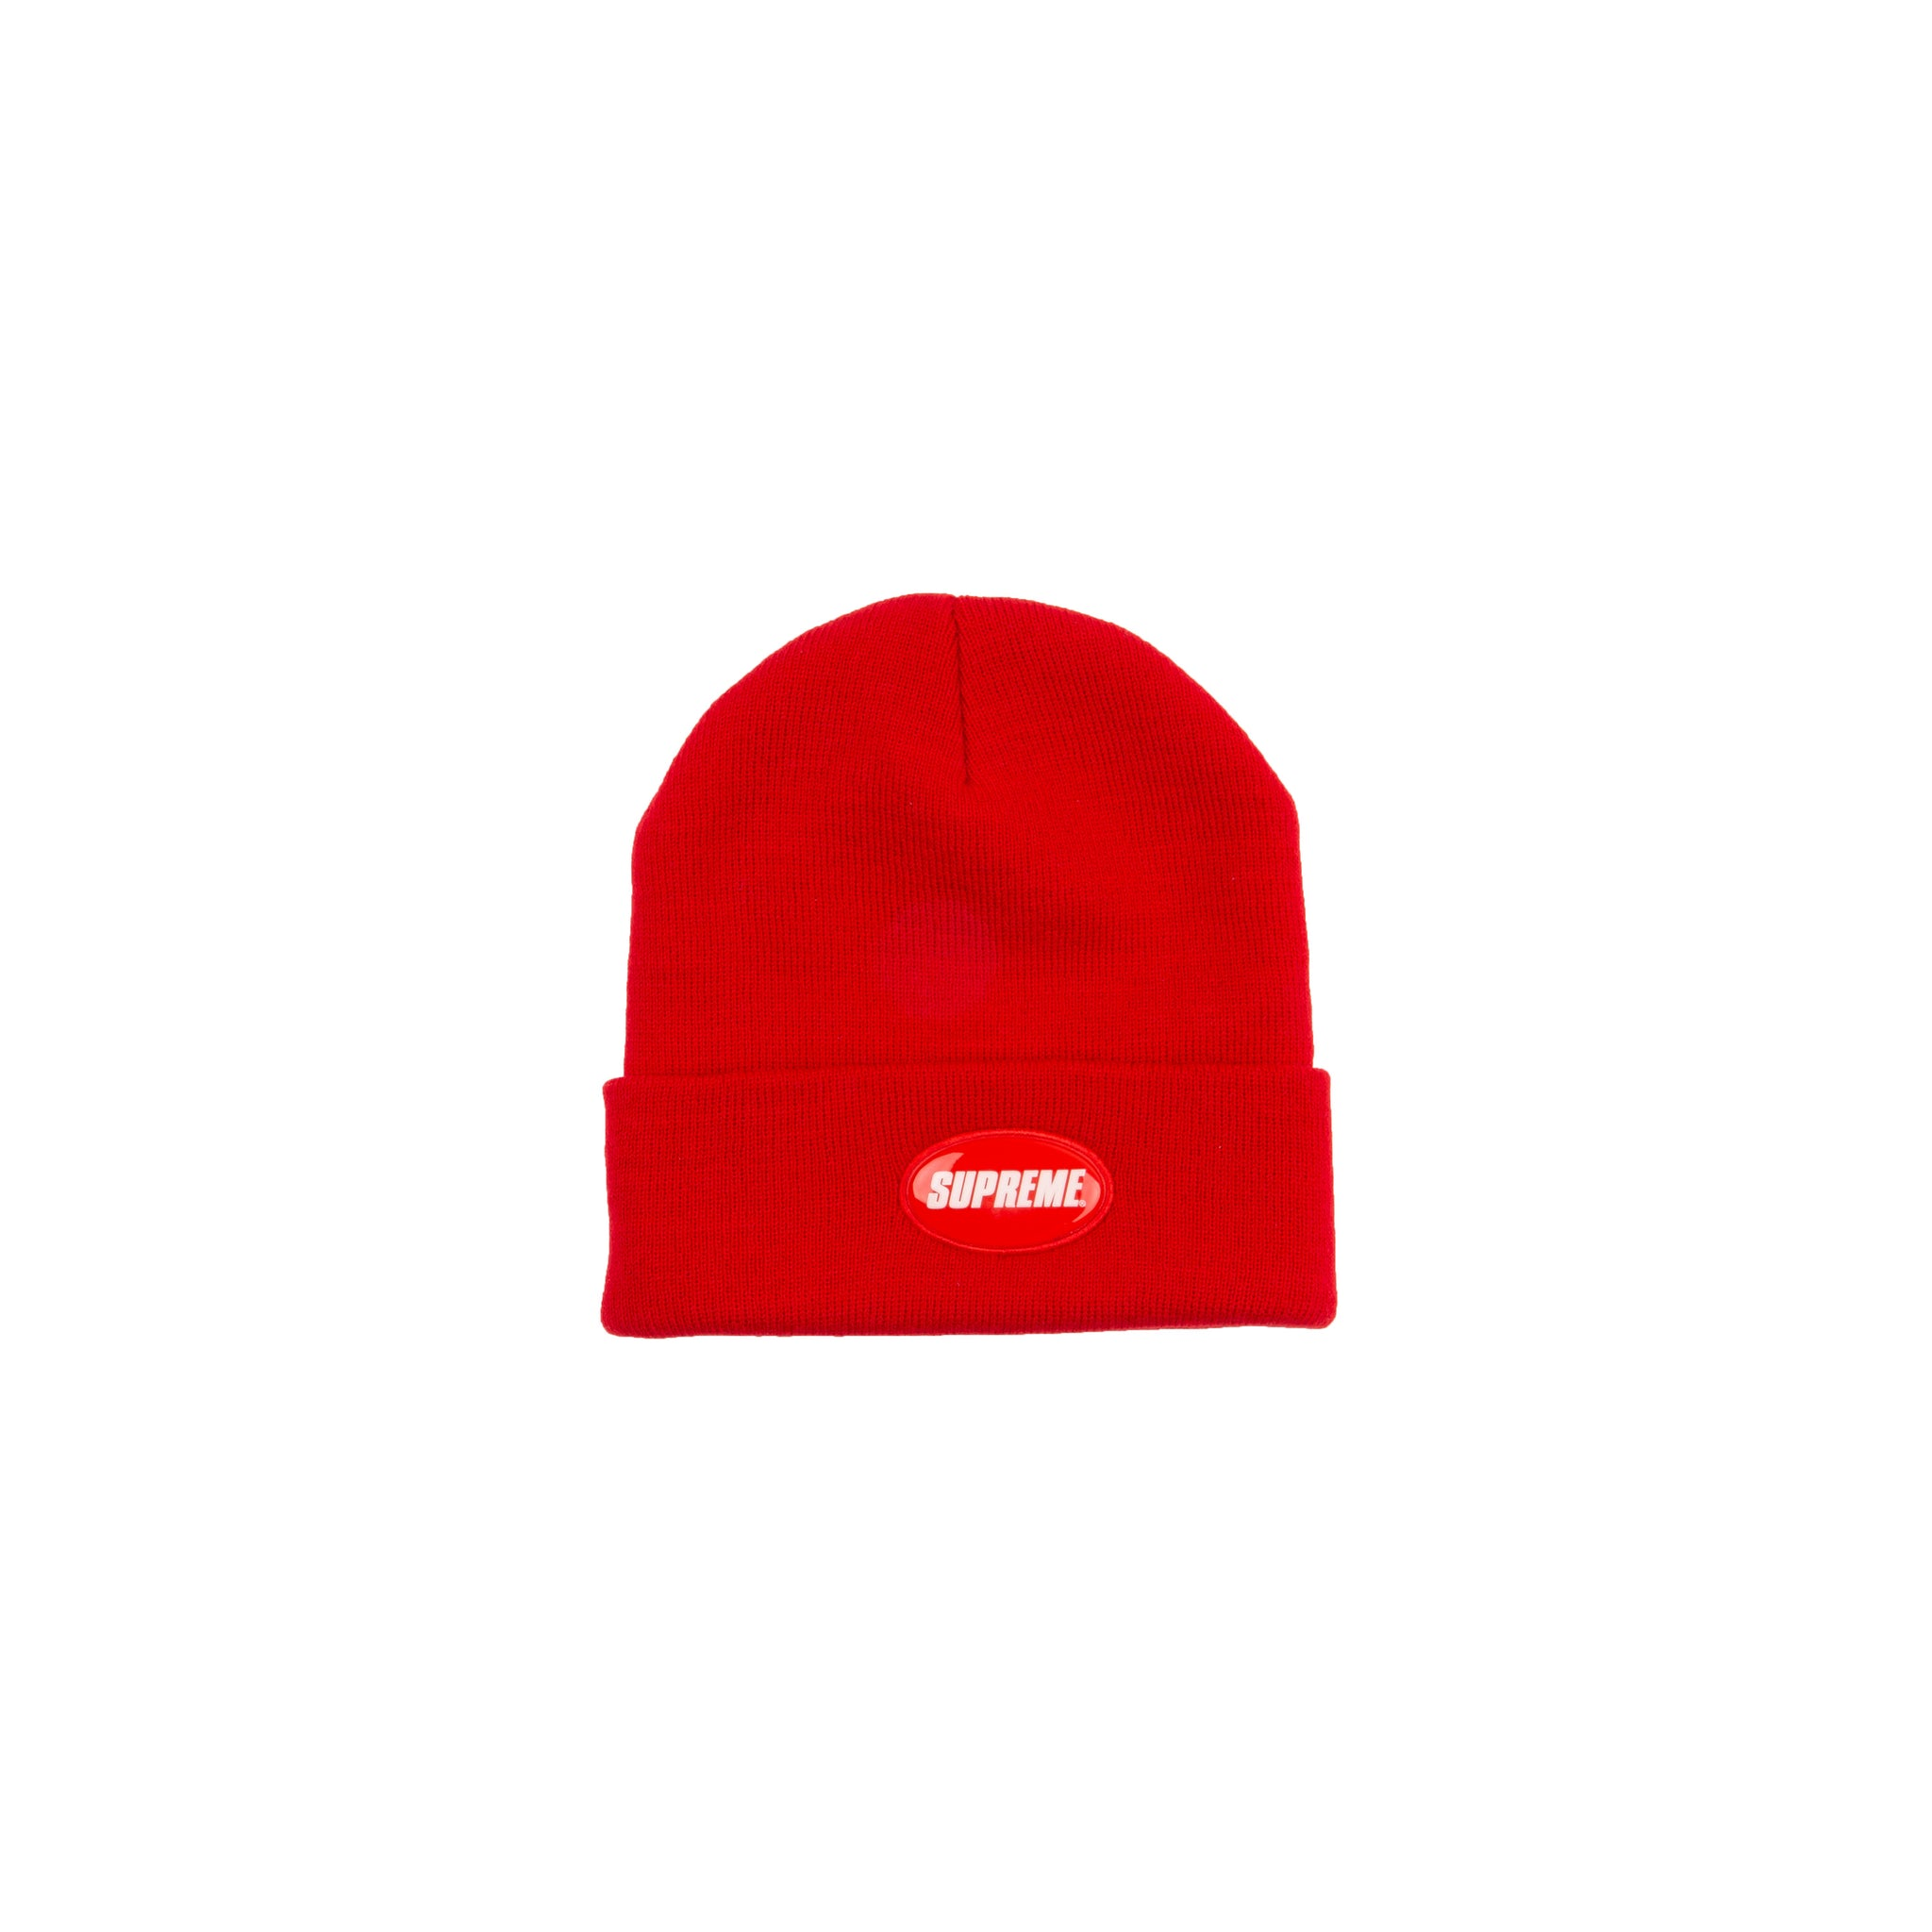 Supreme Red Rubber Patch Beanie